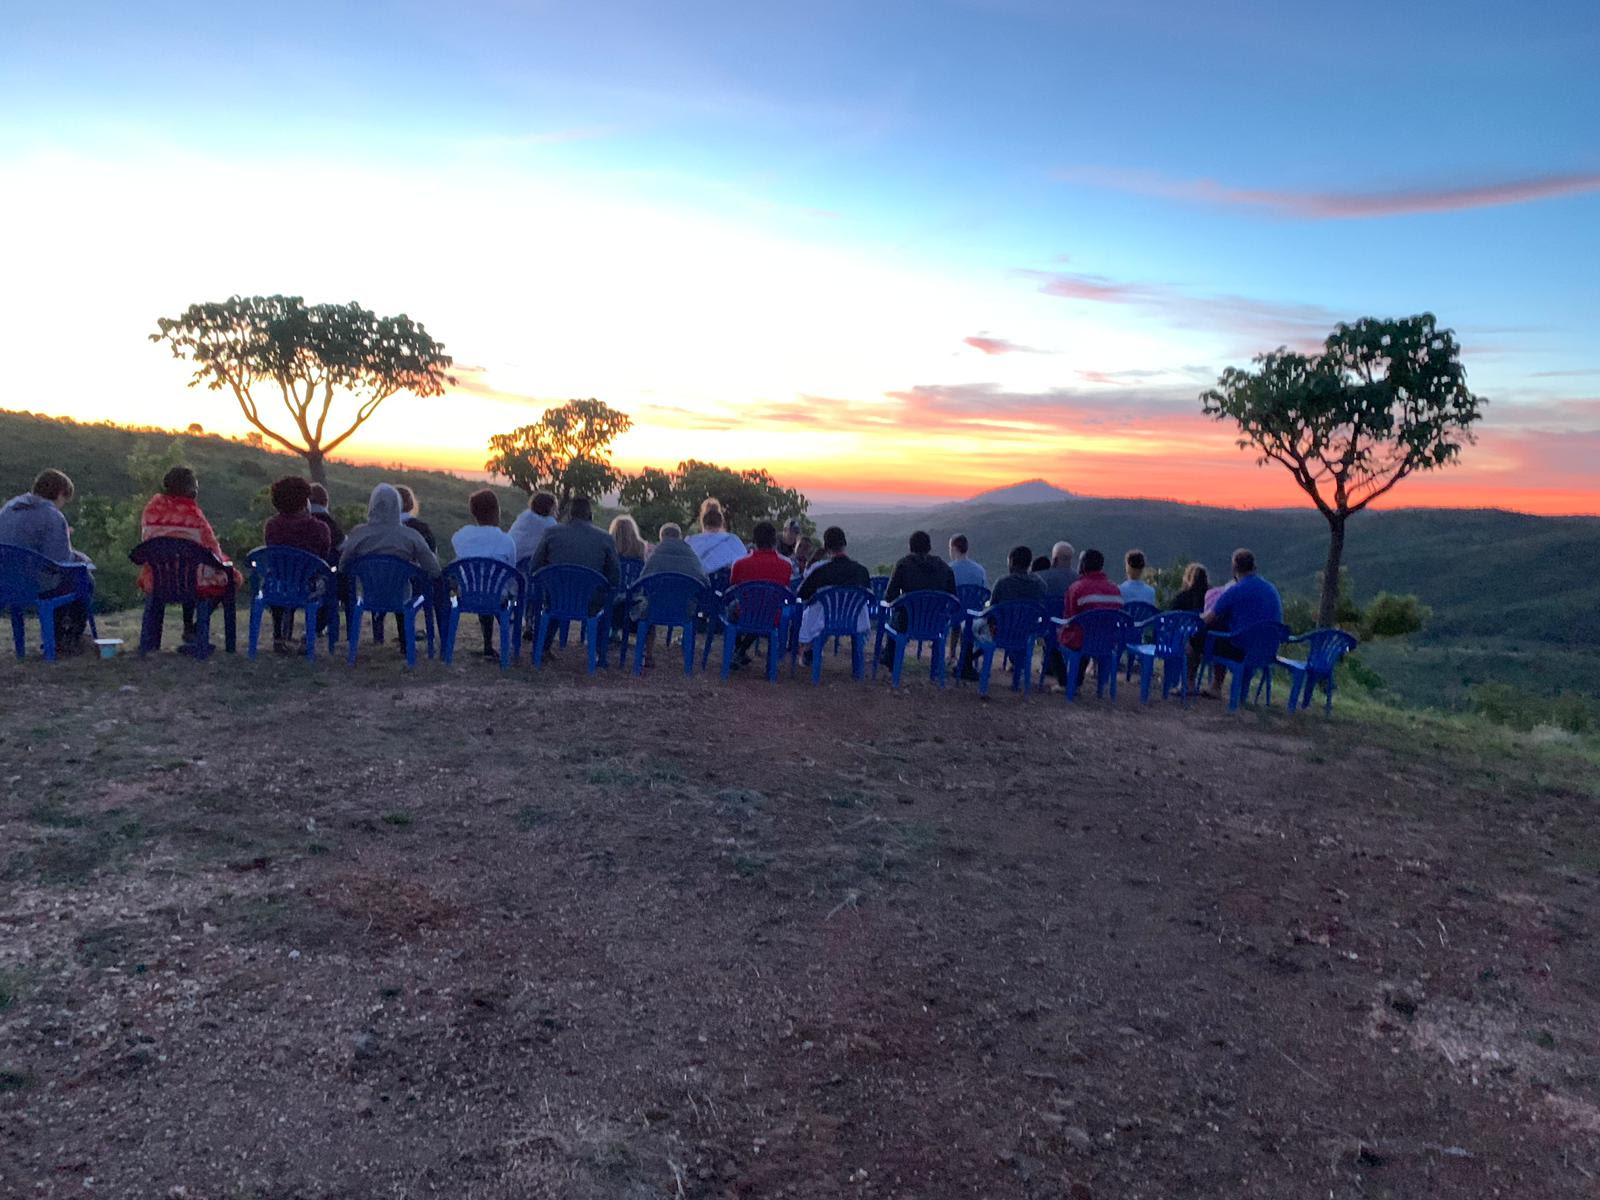 Sunrise Easter service with all our team and students. The students were on break from Friday to Monday, and we were able to spend time getting to know them better, serve them food, and share with each other stories of what God has done in our lives!